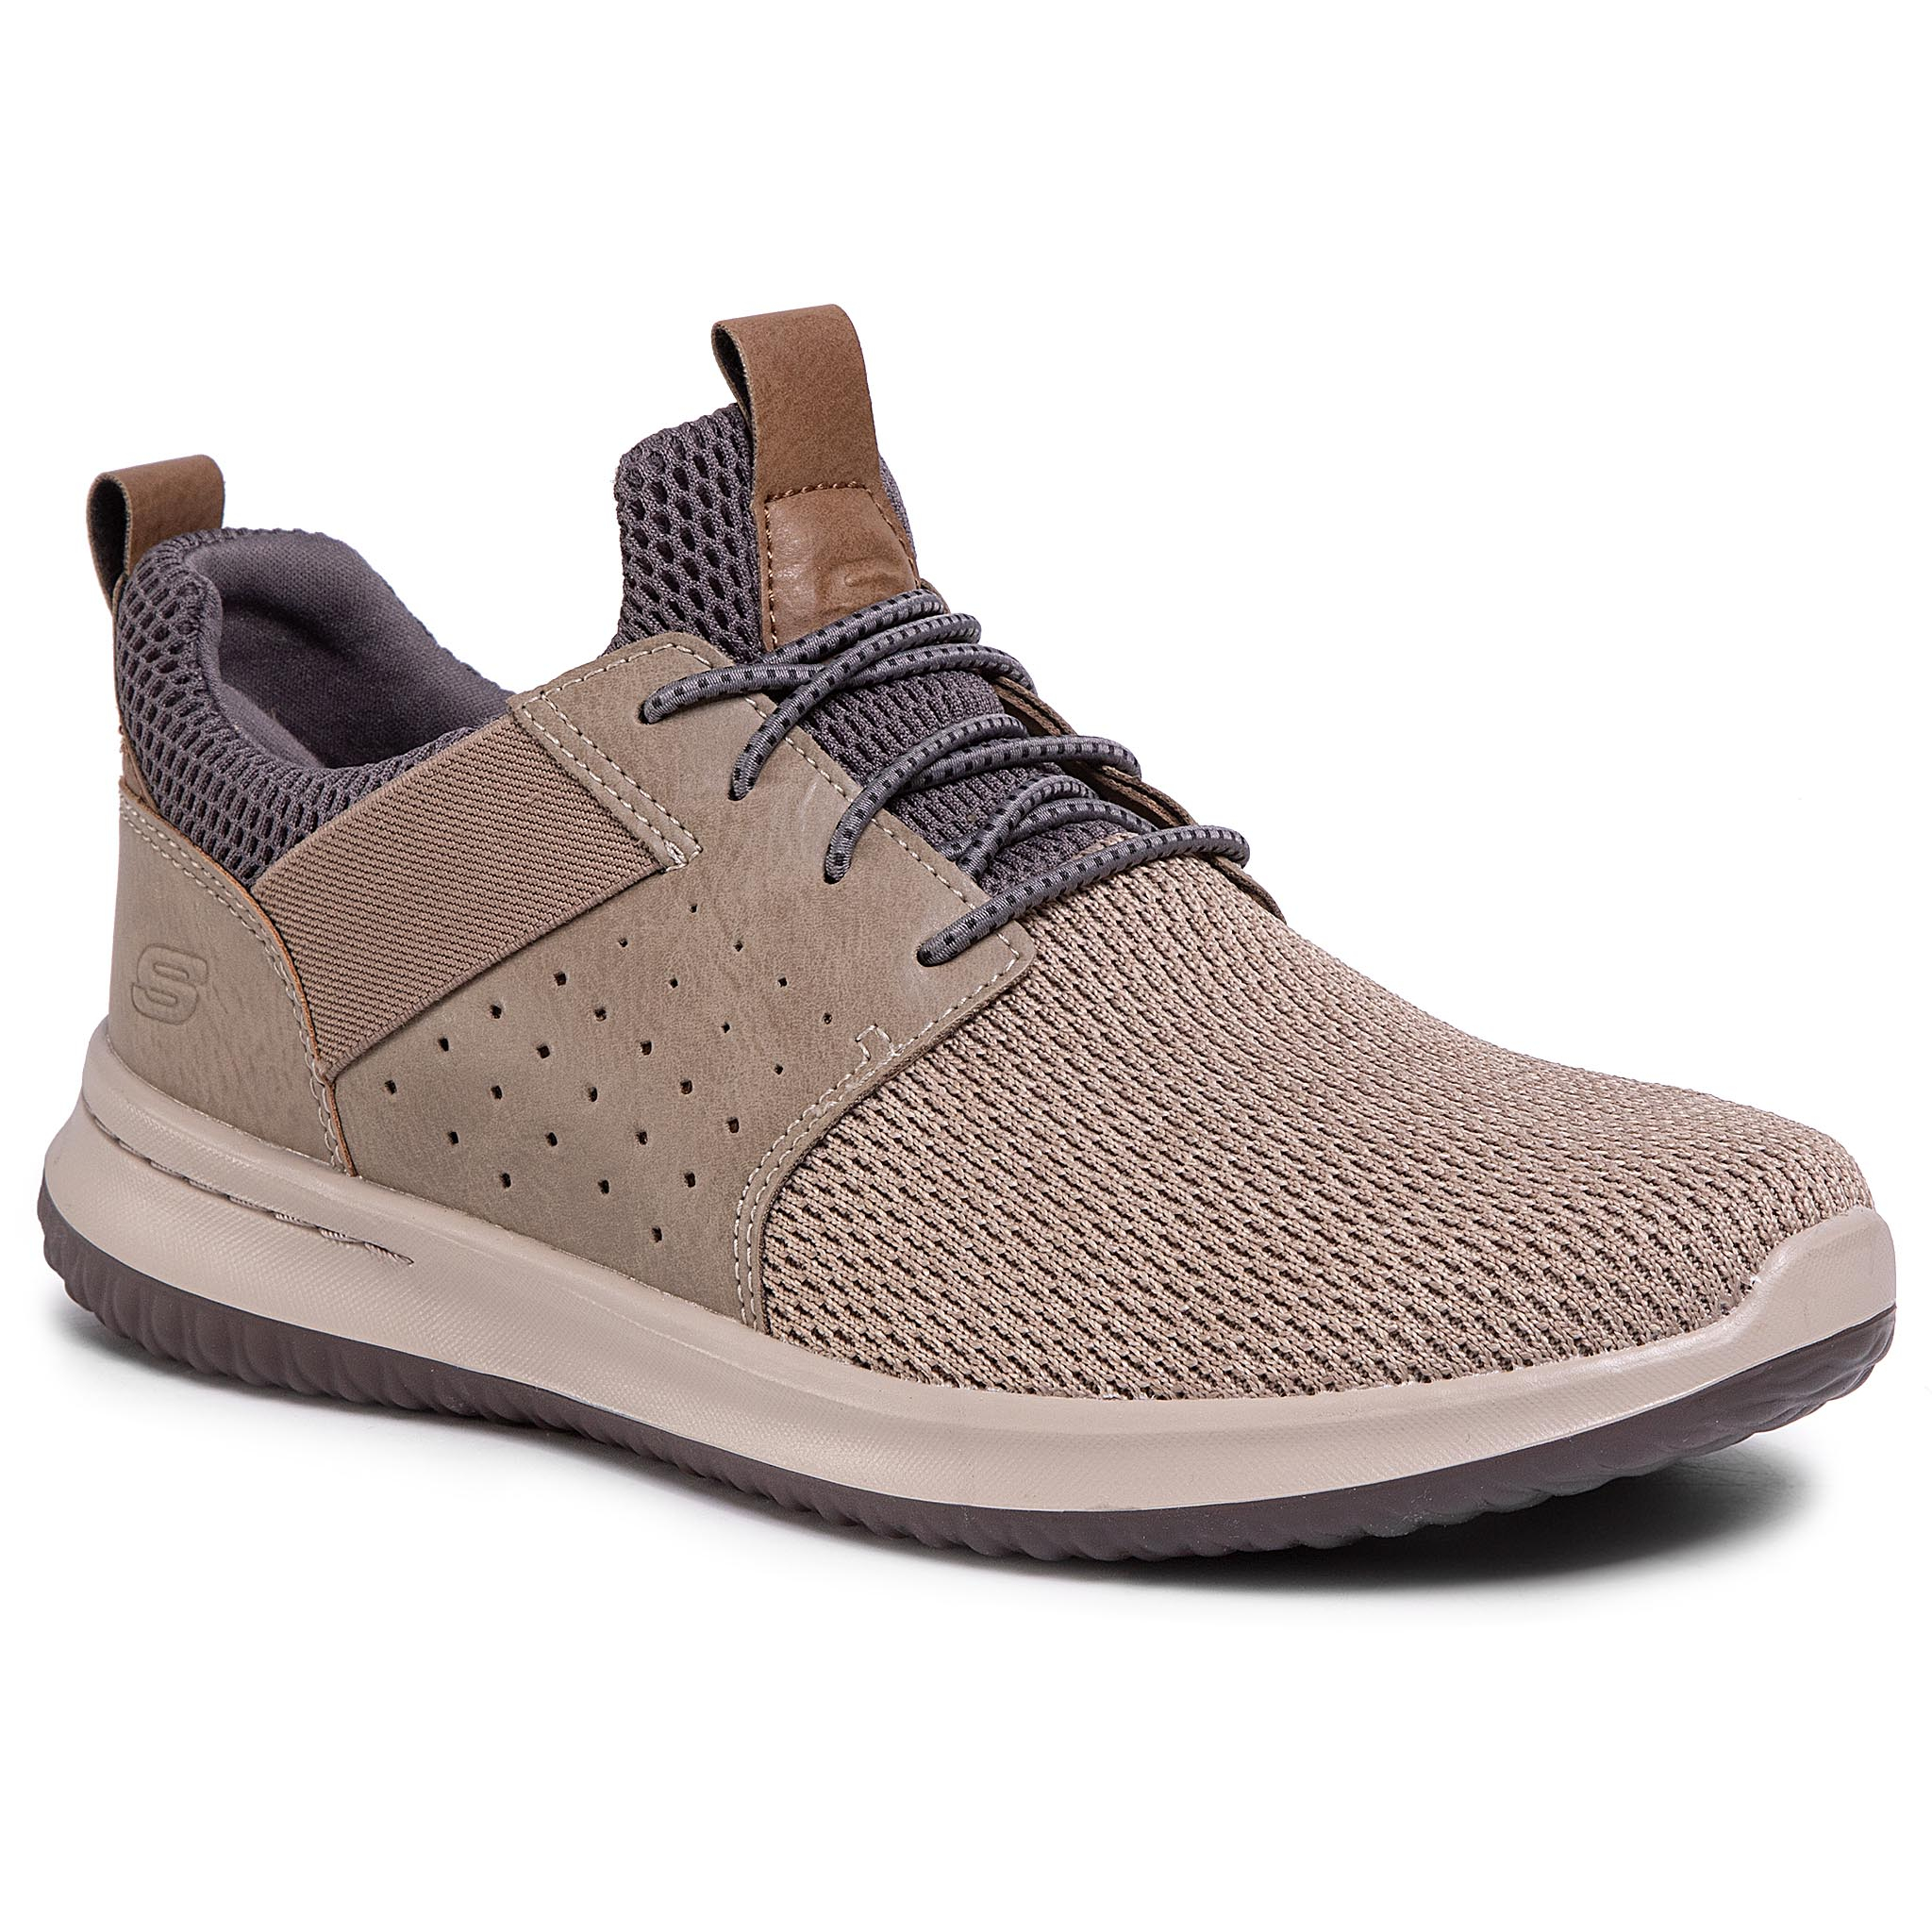 Batai SKECHERS - Delson 65474/TPE Taupe